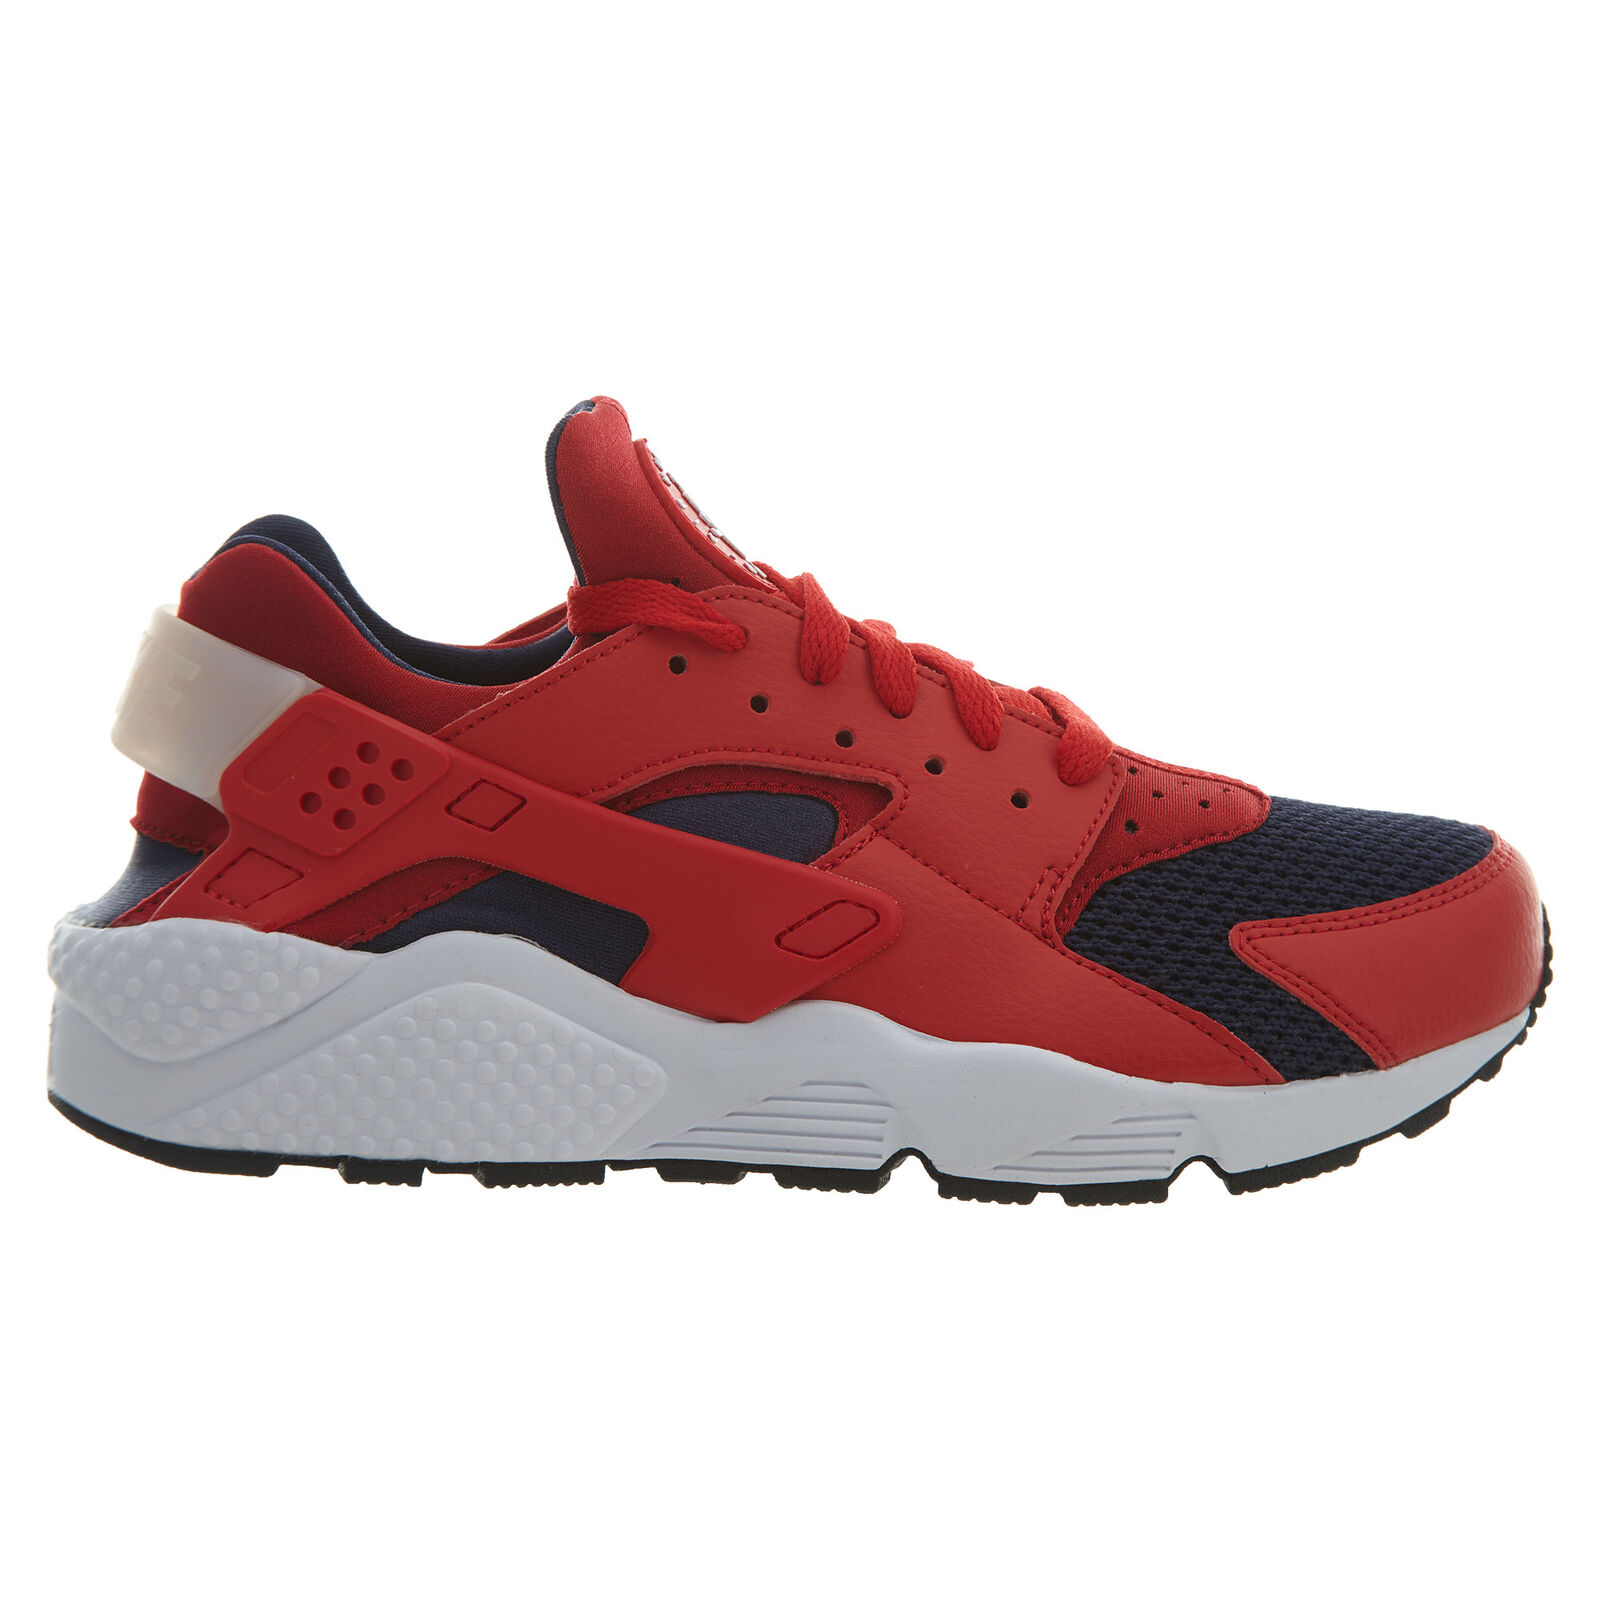 Nike Air Huarache Varsity Pack Mens 318429-611 Red White Running Shoes Size 9.5